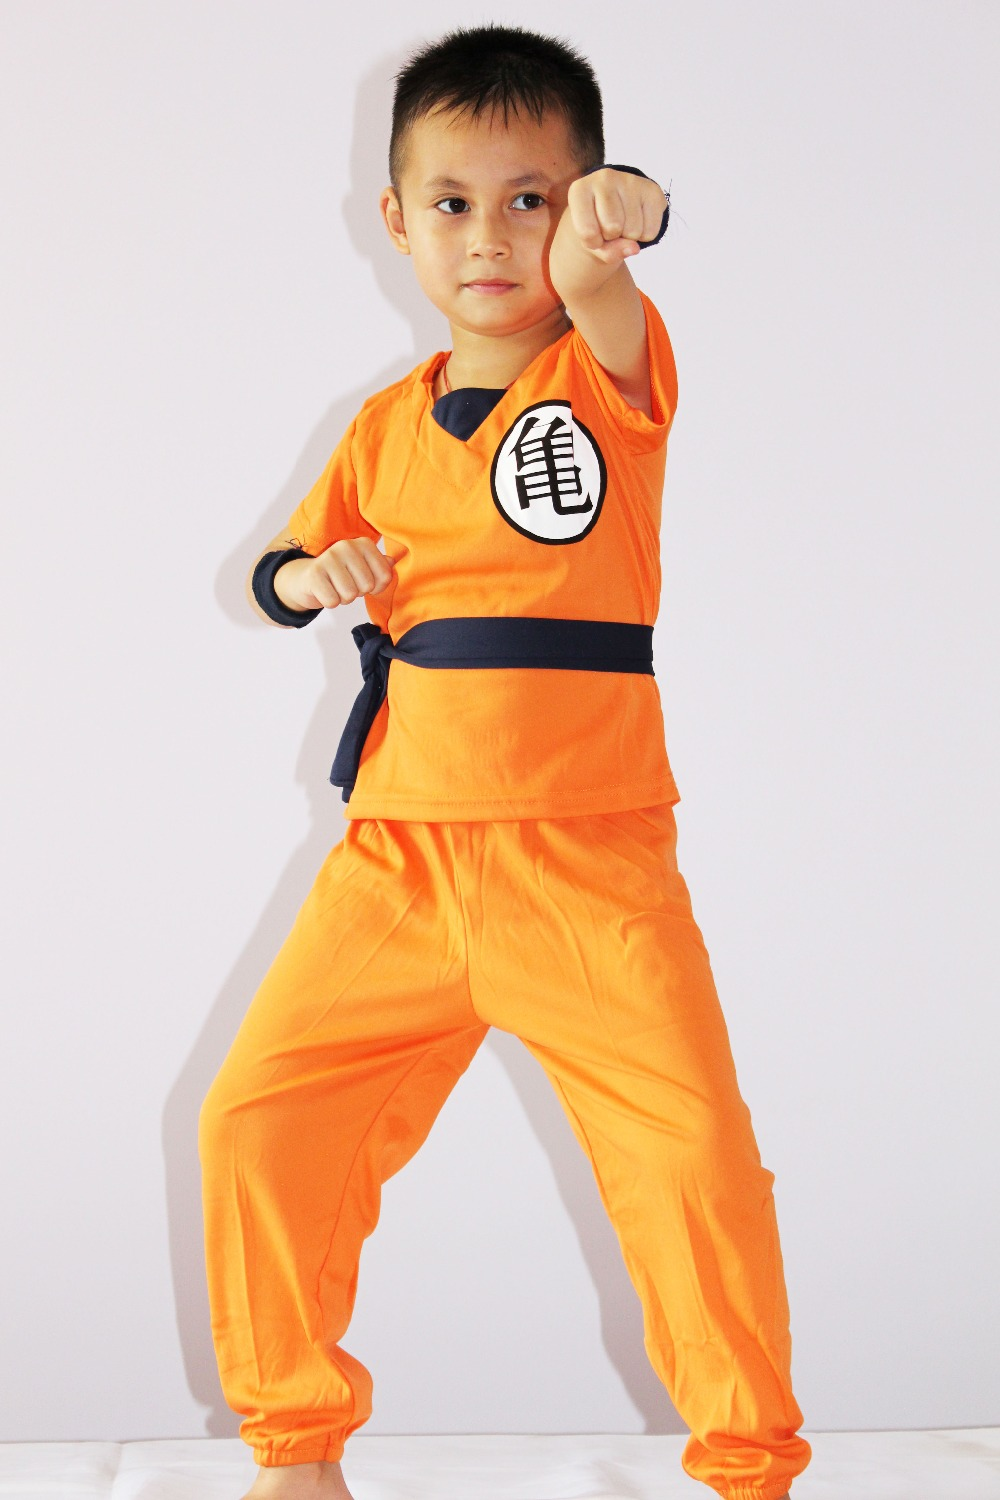 Tegneserie Dragonball 3-7år Boy Saiyan Rollespil cosplay, Halloween kostumer kid Star SON GOKU model tøj og gratis forsendelse